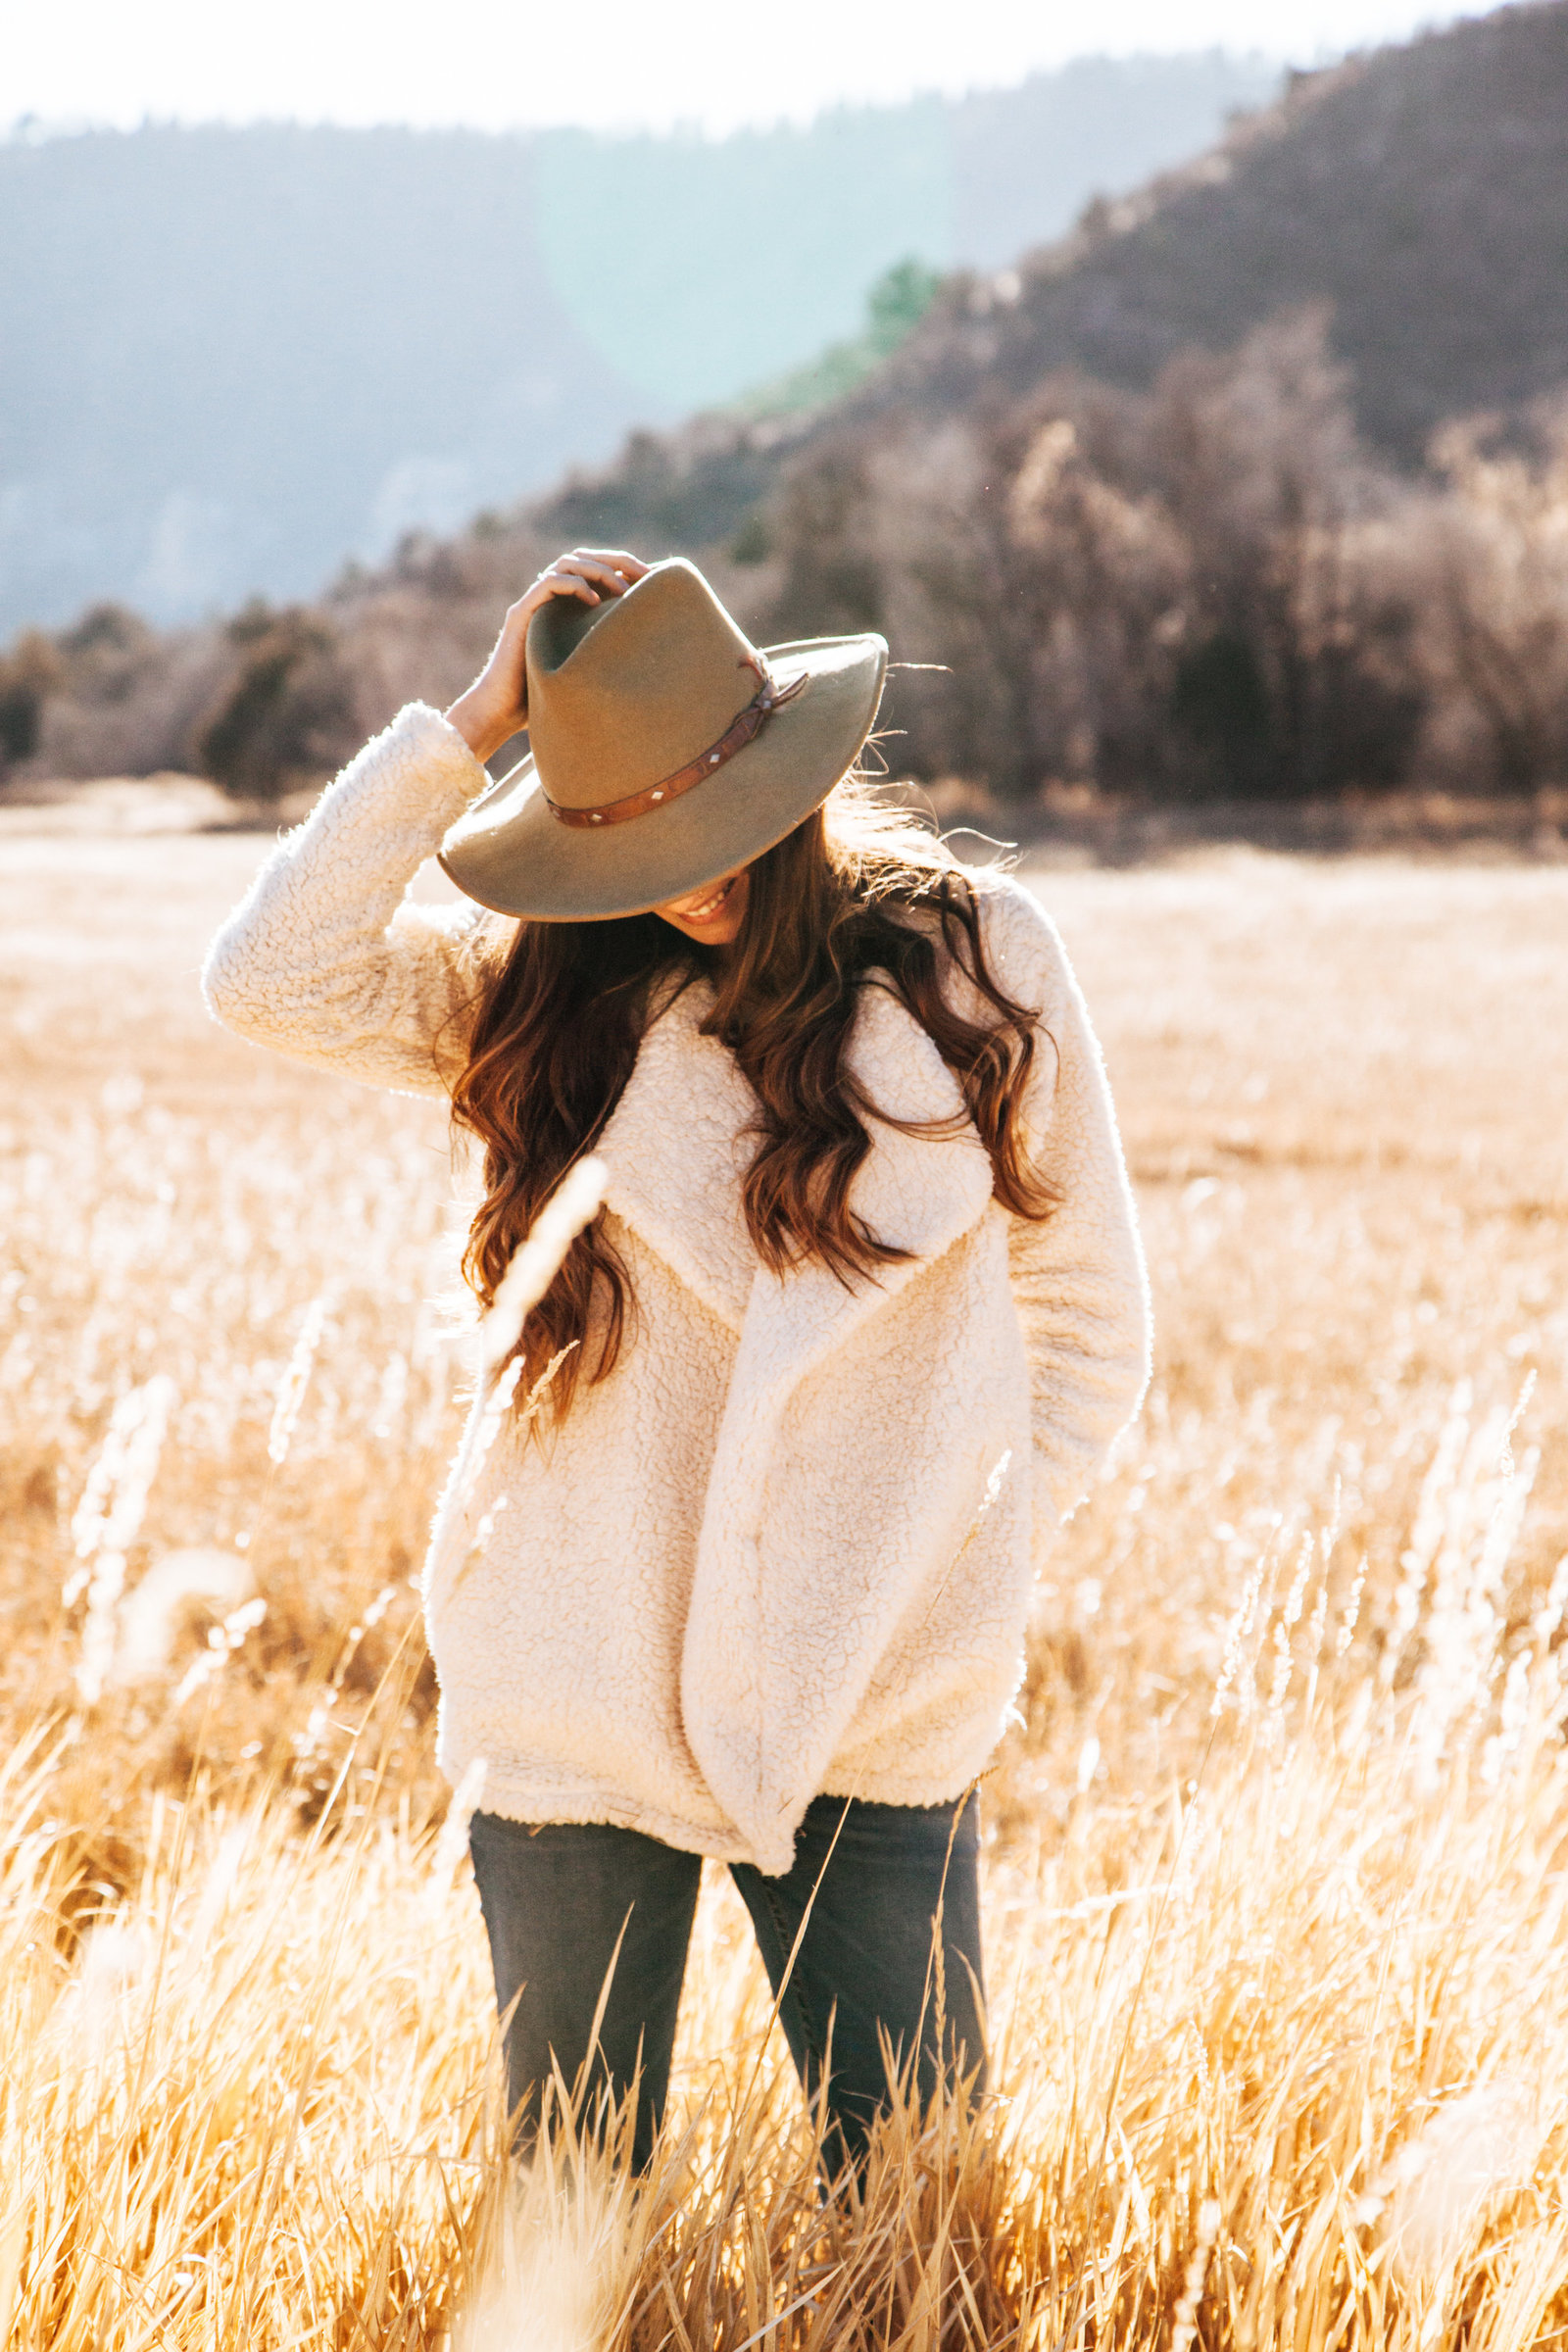 miling Woman in White Winter Jacket Wearing Brown Cowboy Hat Surrounded of Brown Grass Field